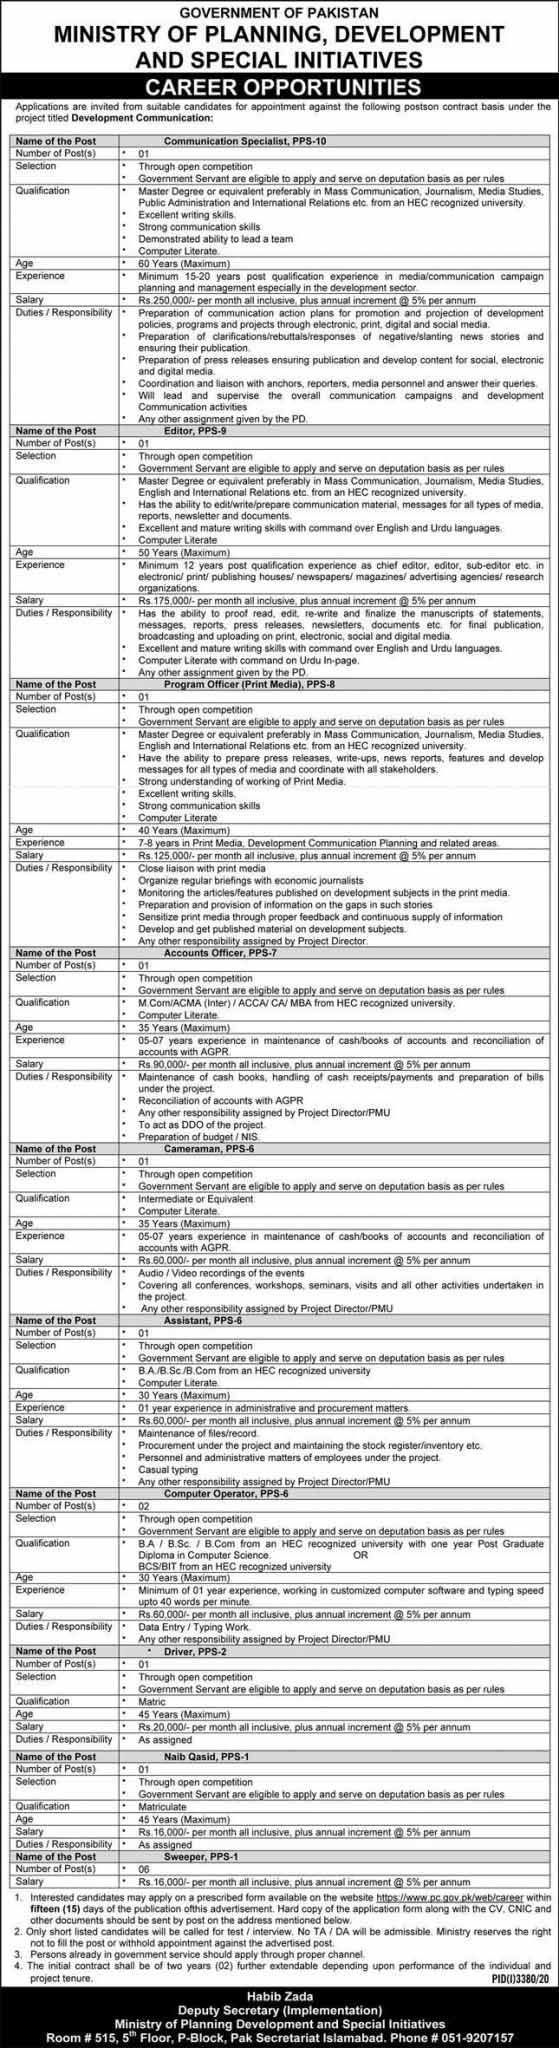 Accounts Officer Assistant Cameraman Communication Specialist Computer Operator Editor Naib Qasid Program Officer Driver Sweeper